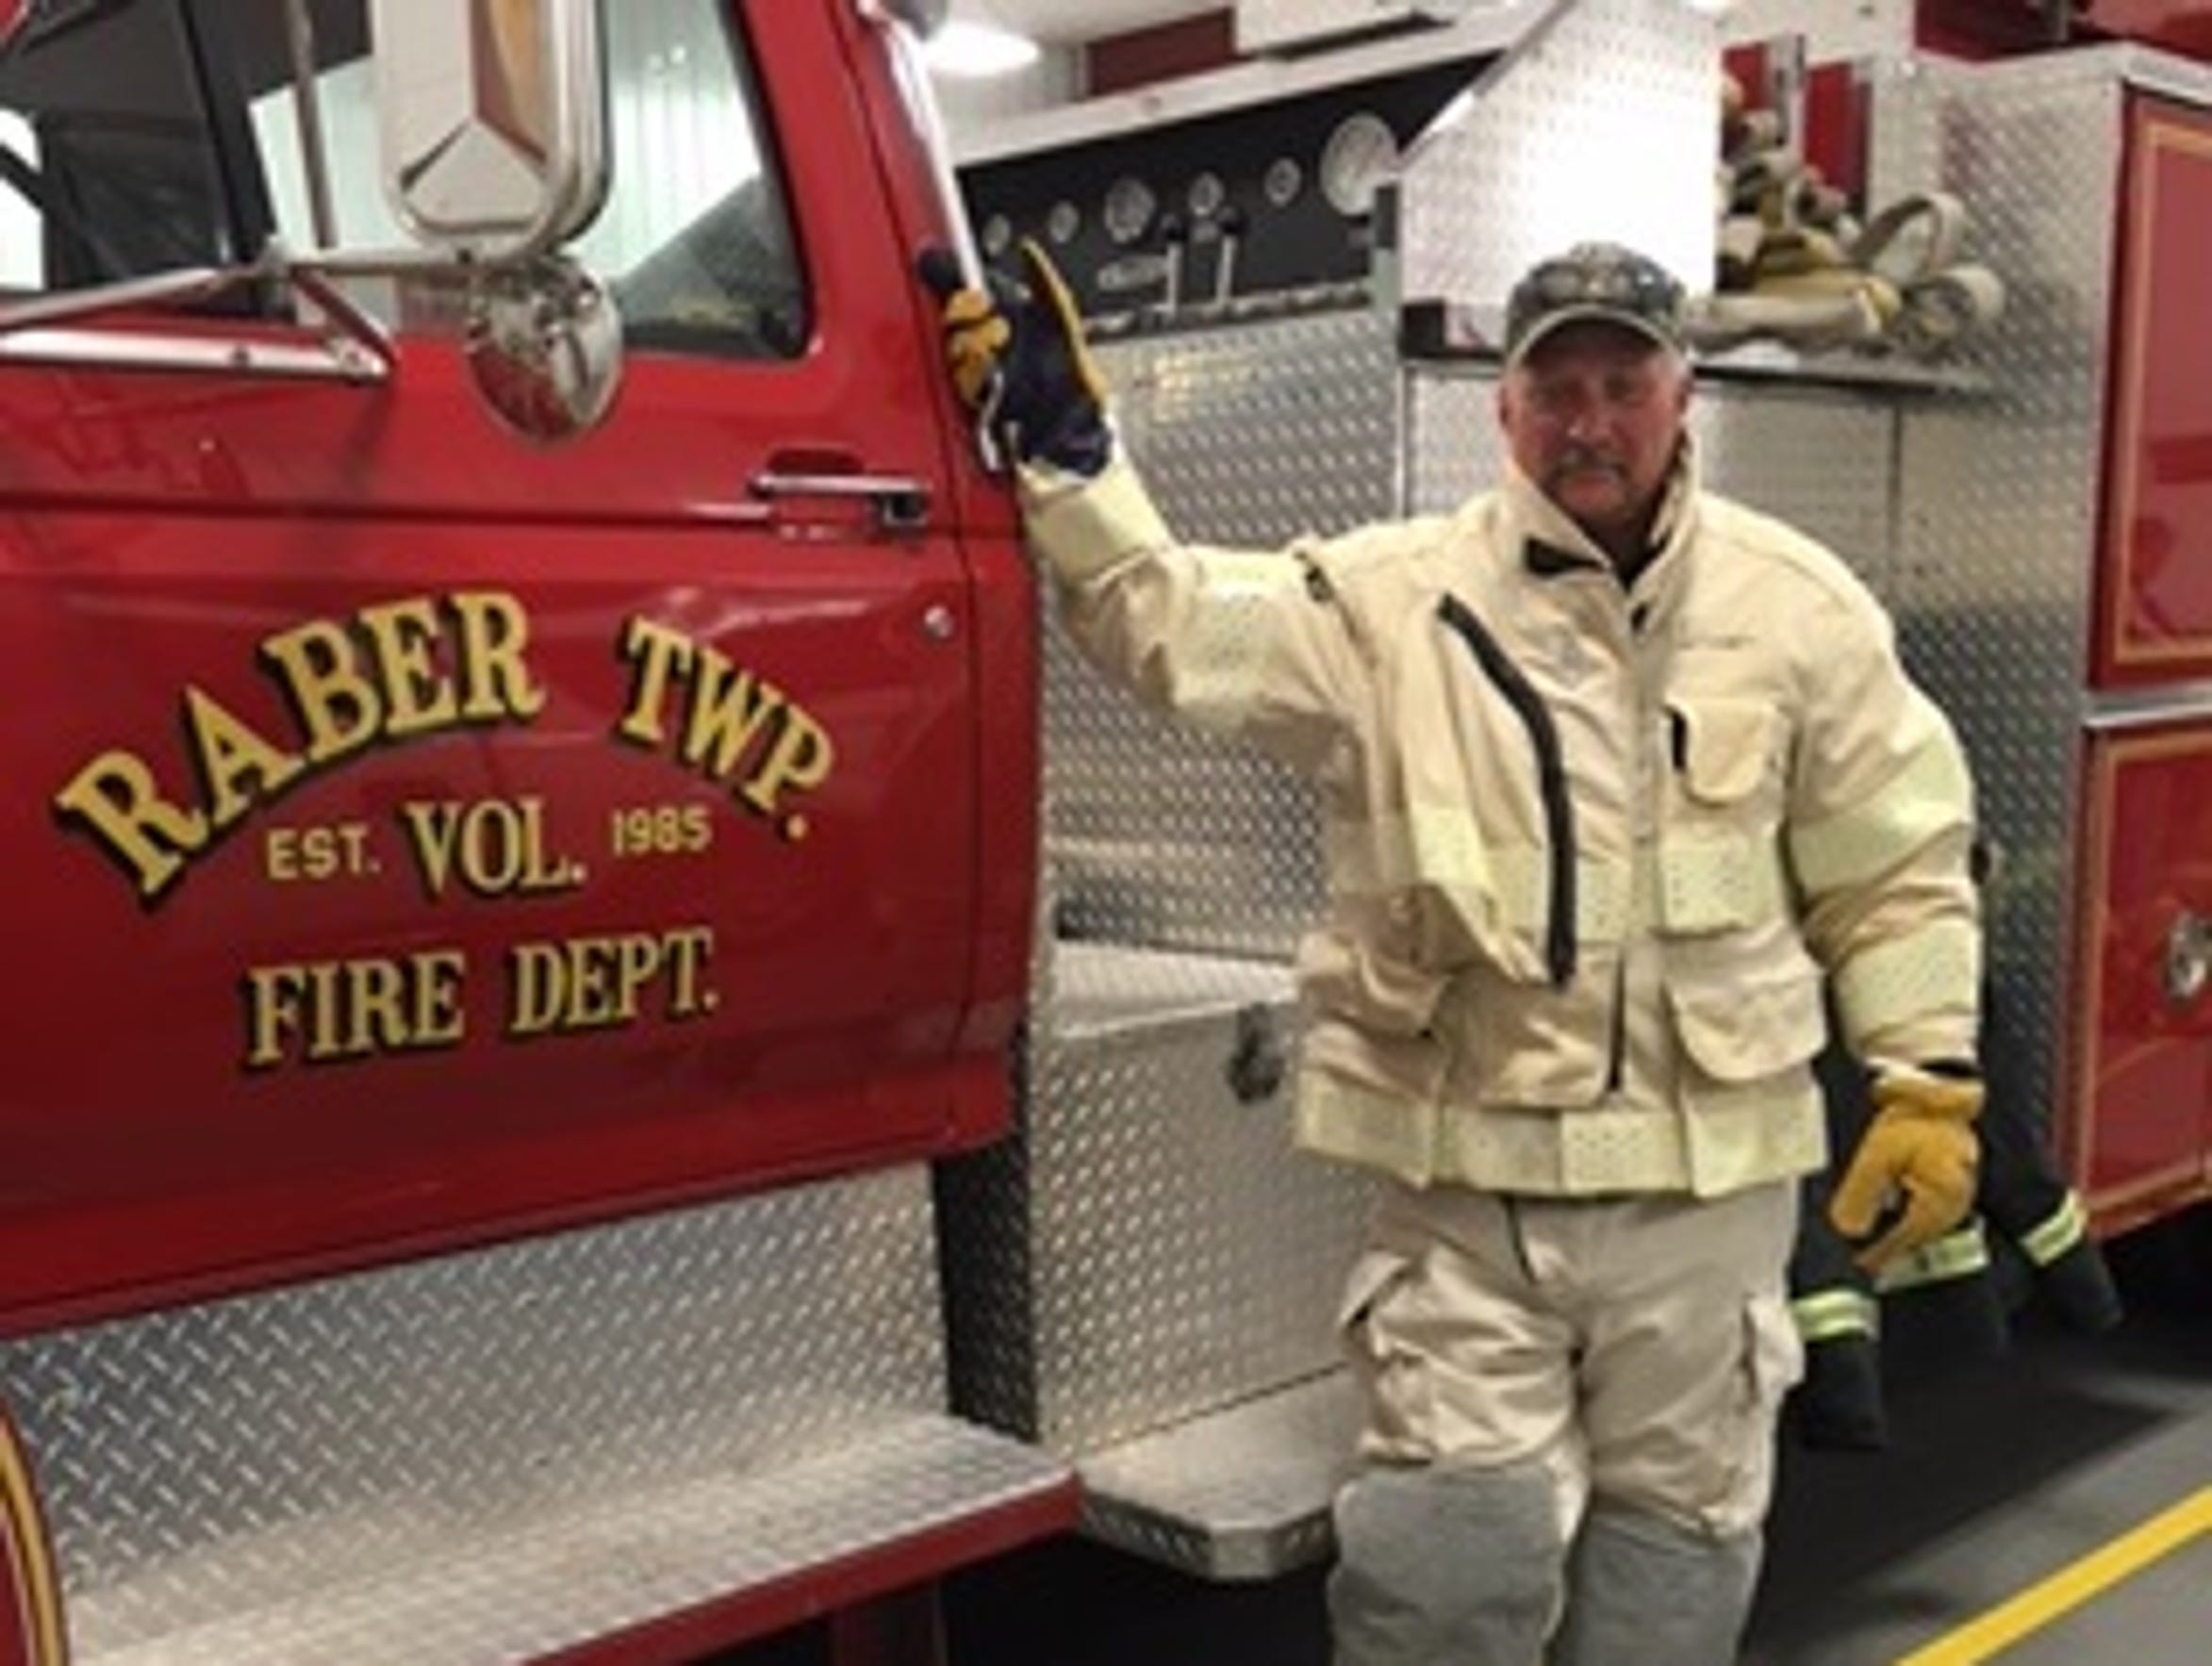 Raber Fire Chief Bruce Johnson tries on a new set of